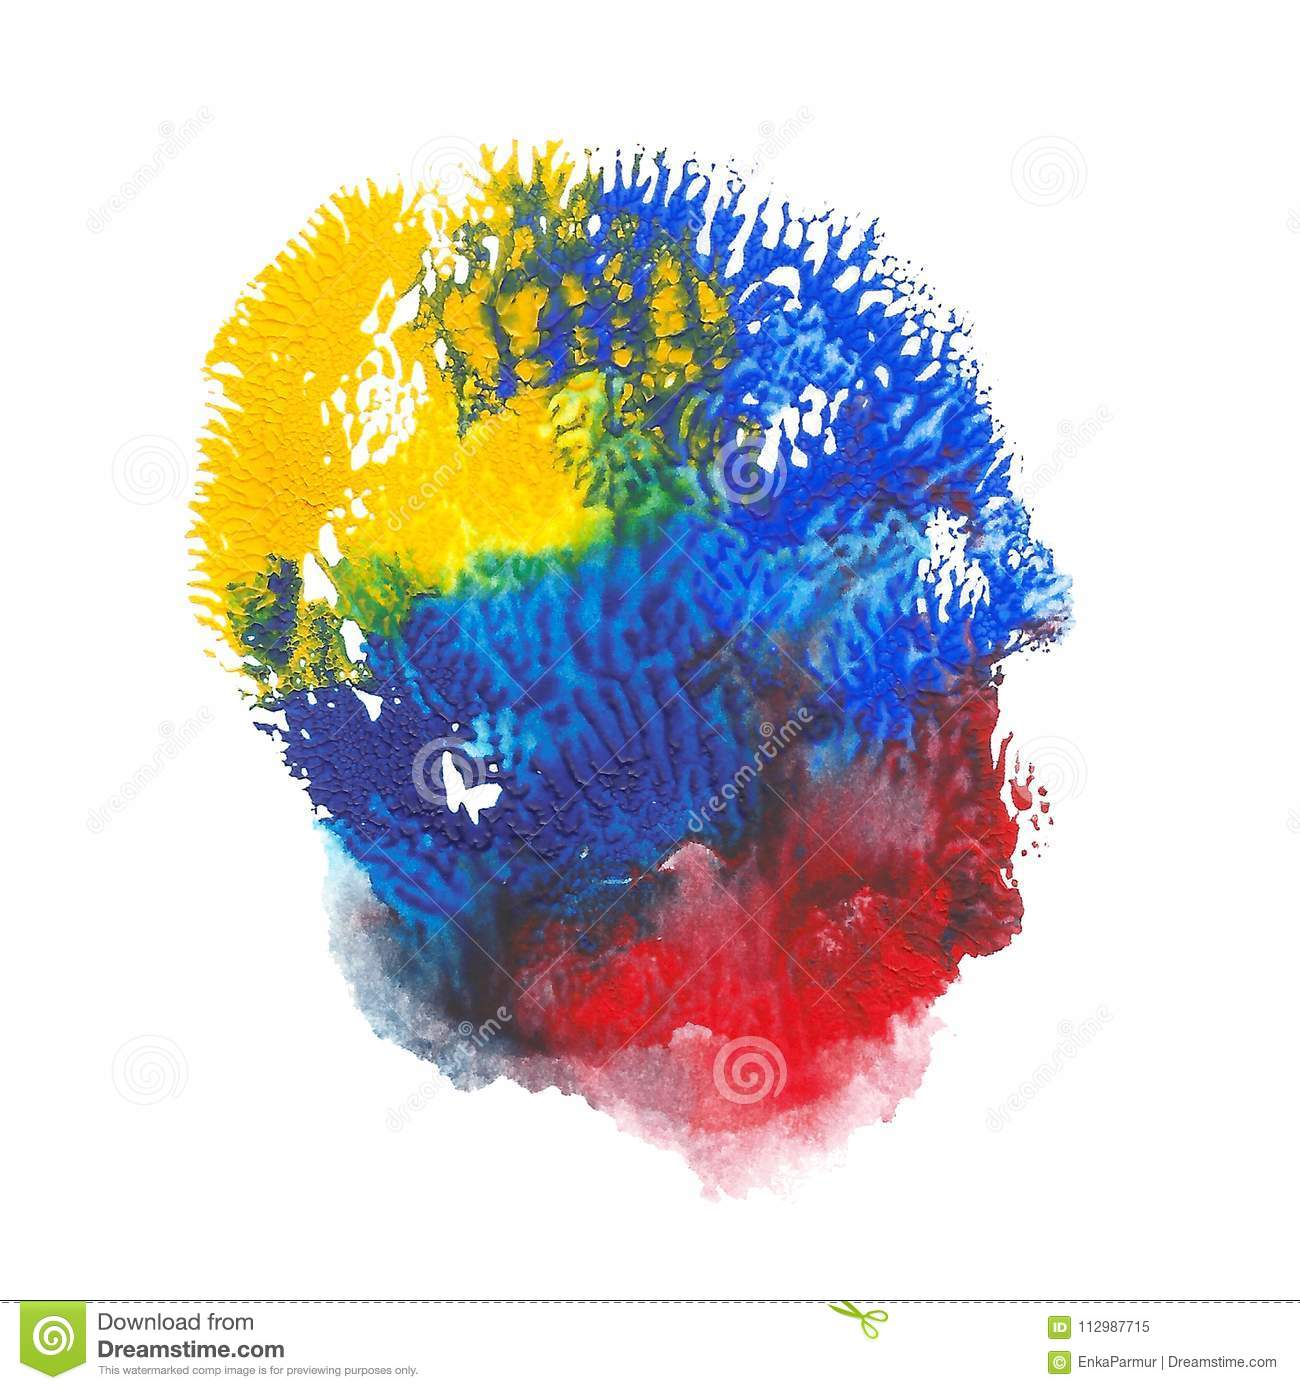 Abstract acrylic spot on white background. Red, blue, yellow vibrant color.